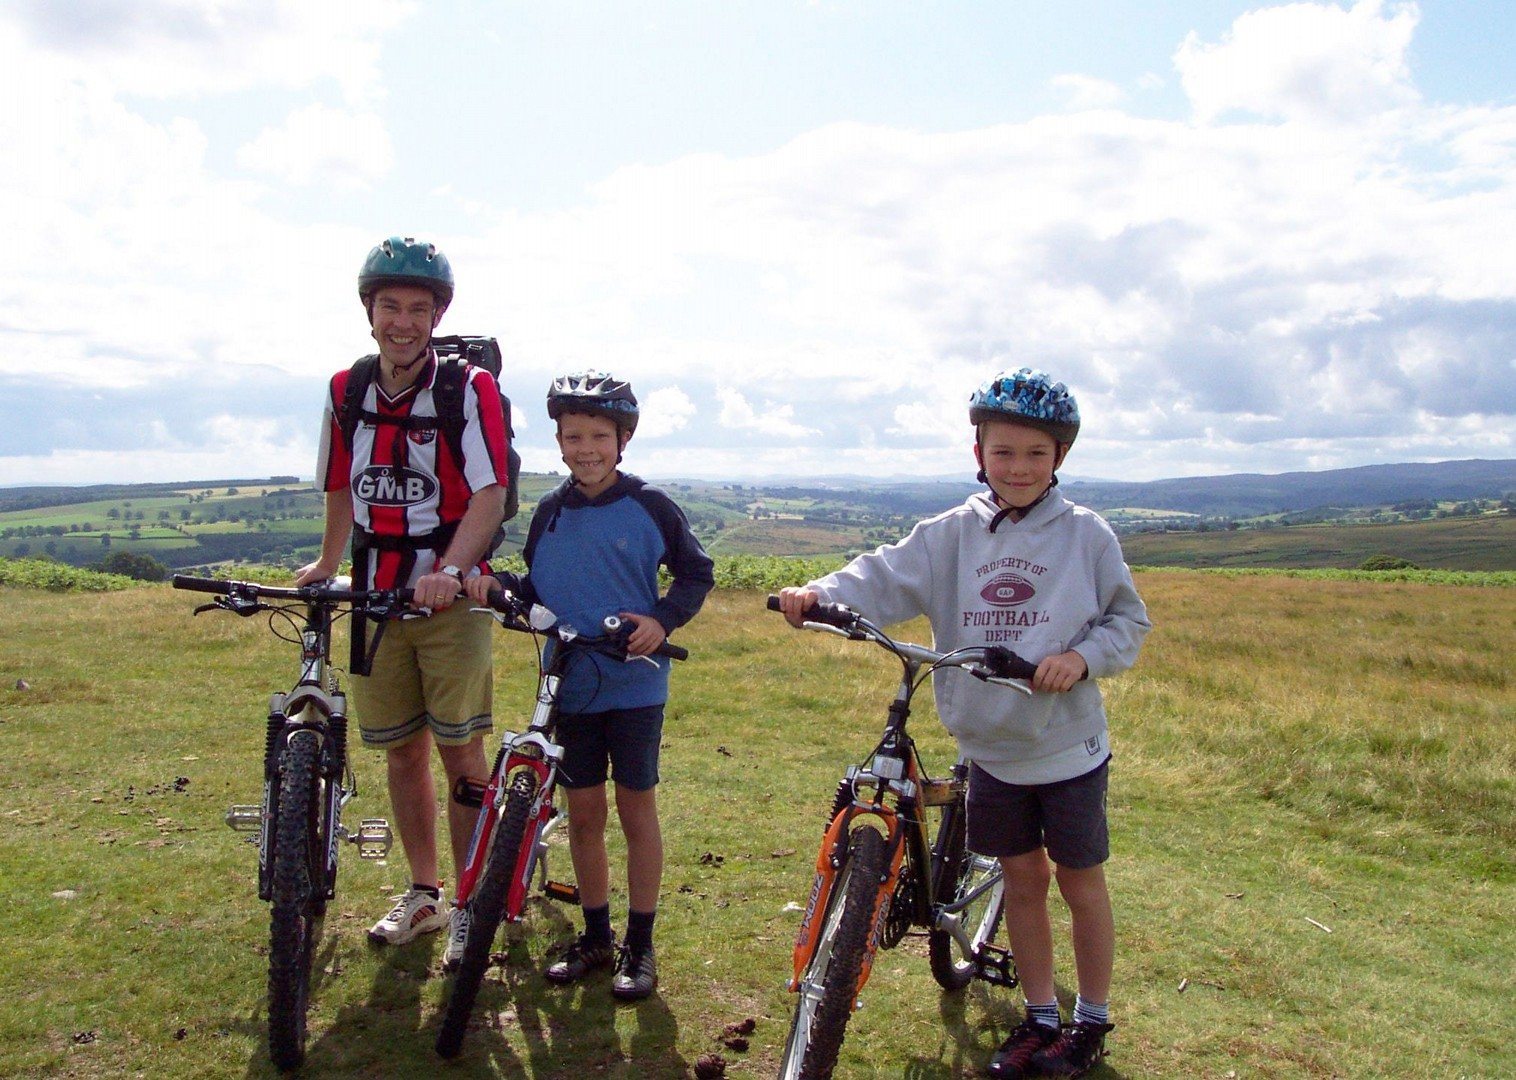 bike-skills-lake-district-guided-holiday.jpg - UK - Lake District - Guided Family Bike Skills - Family Cycling